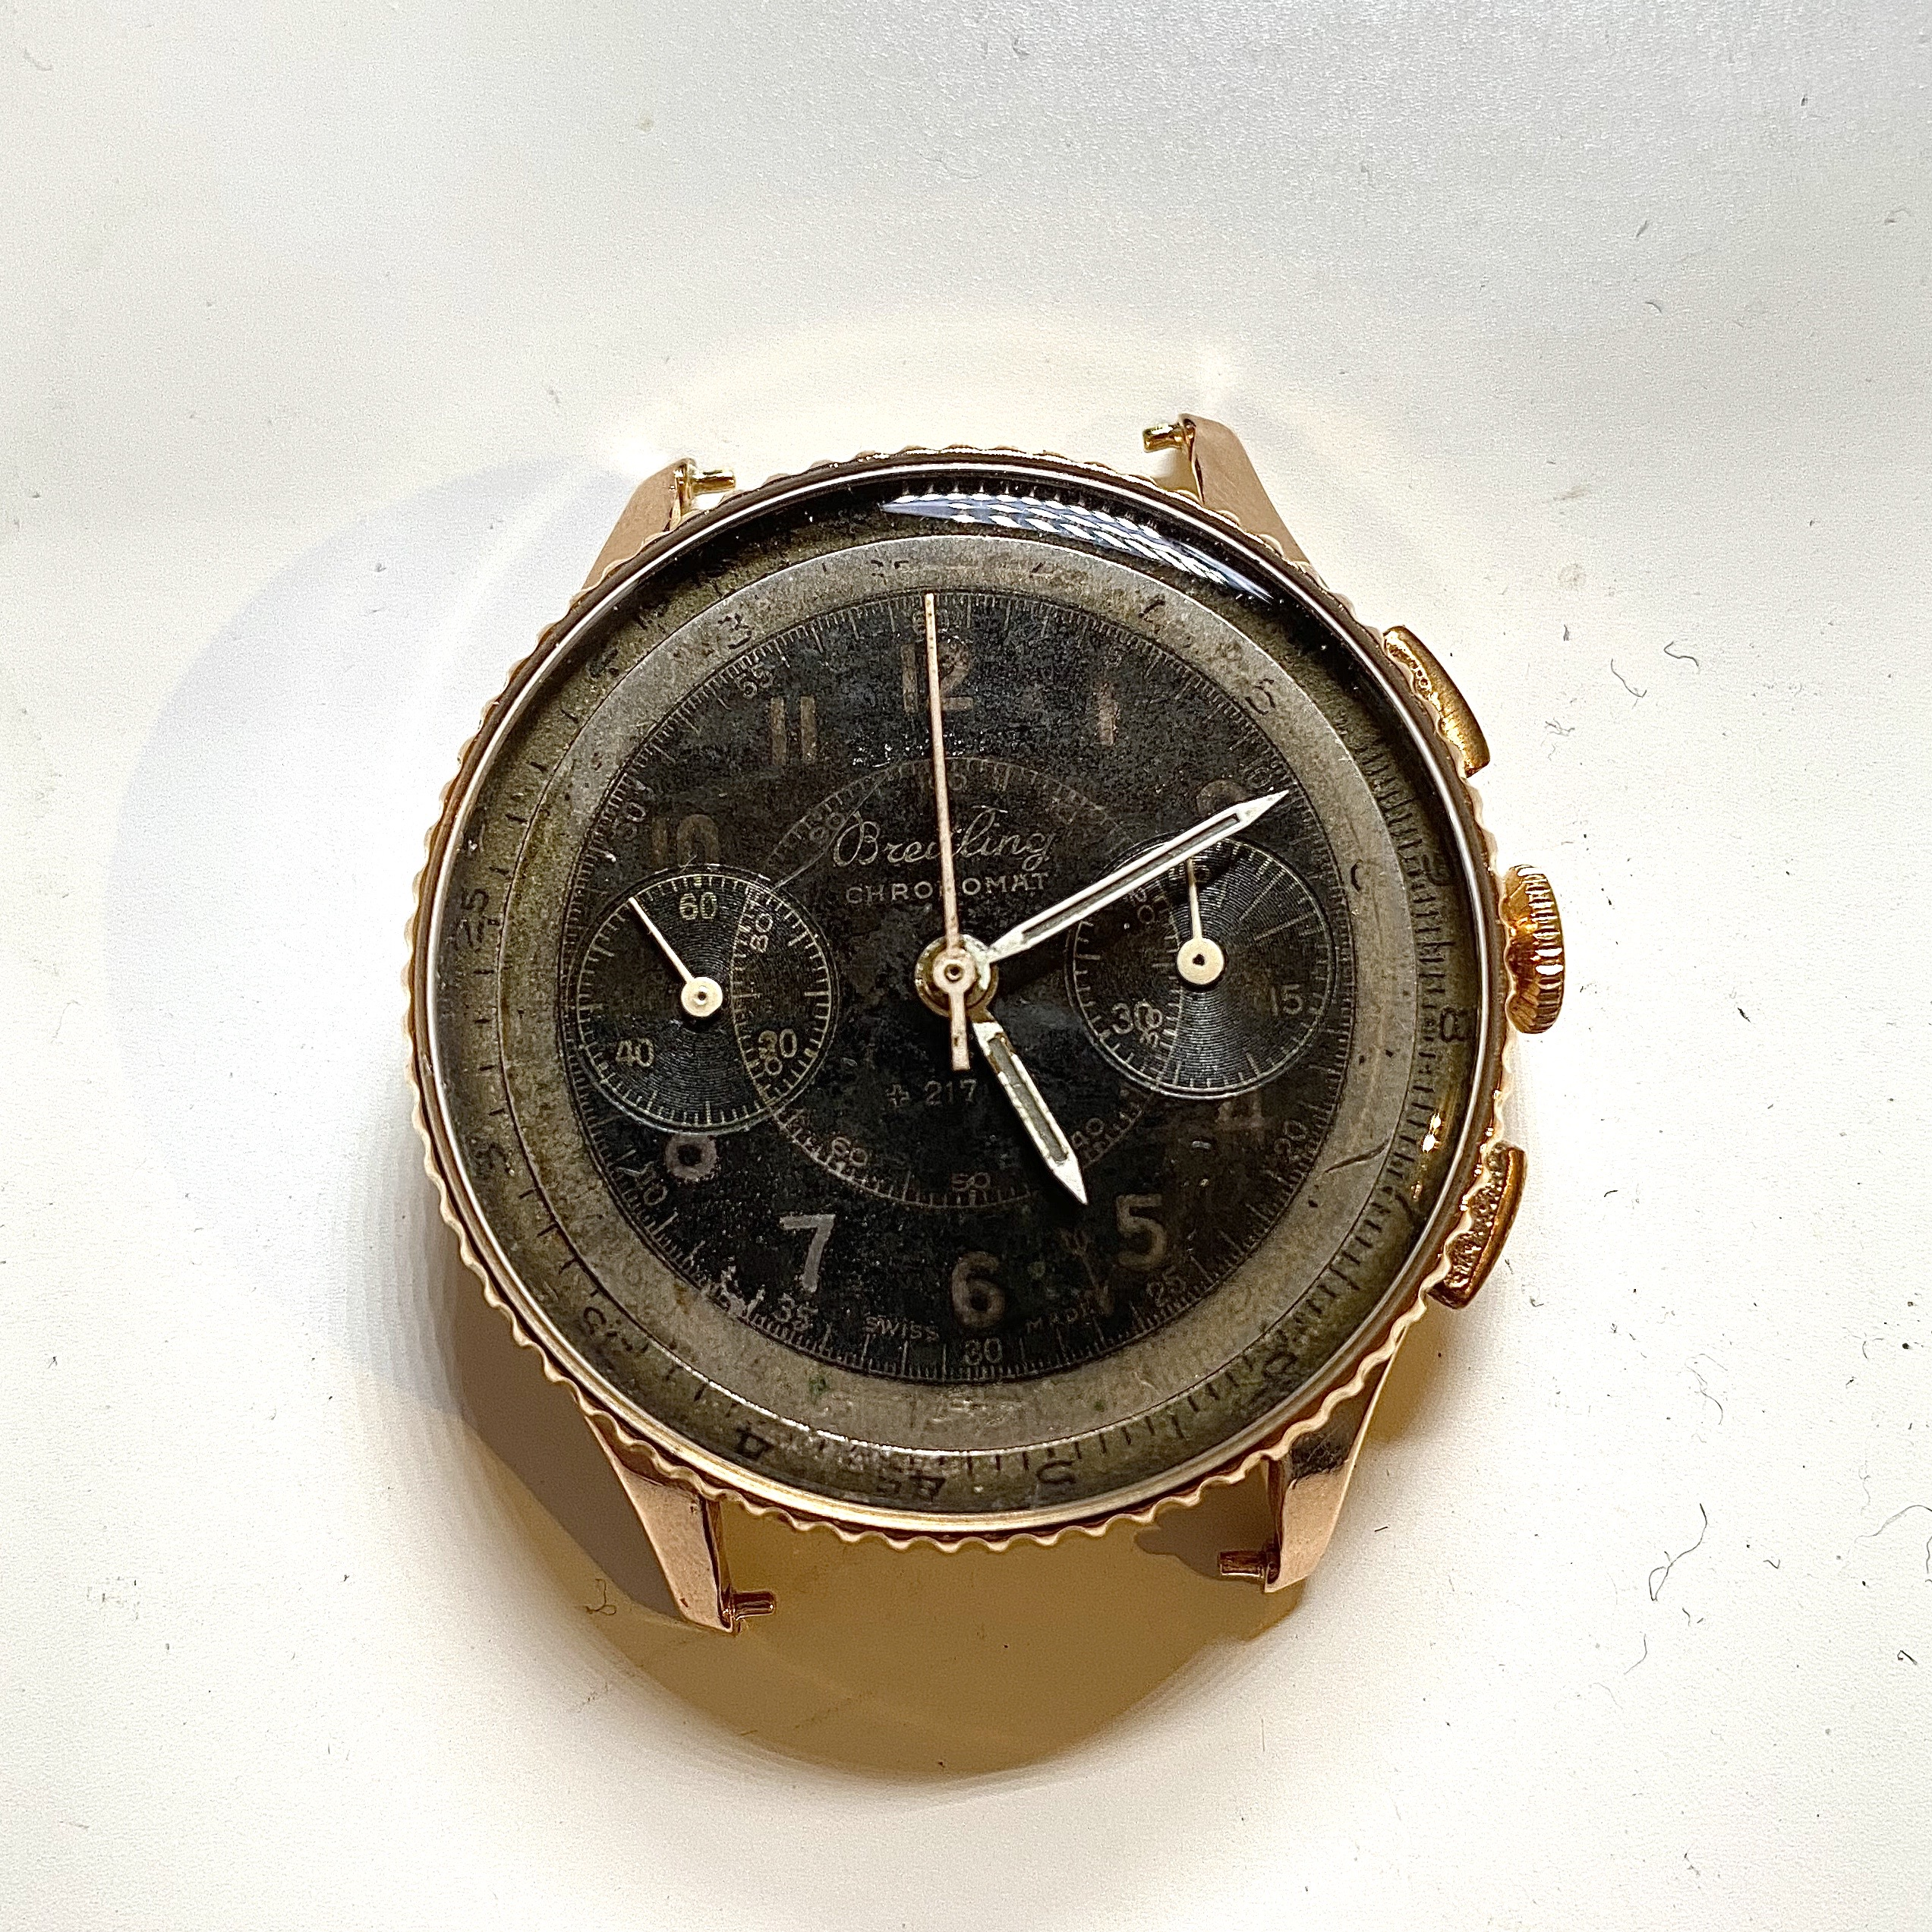 Lot 12 - Breitling Chronomat 18ct Vintage ref 769